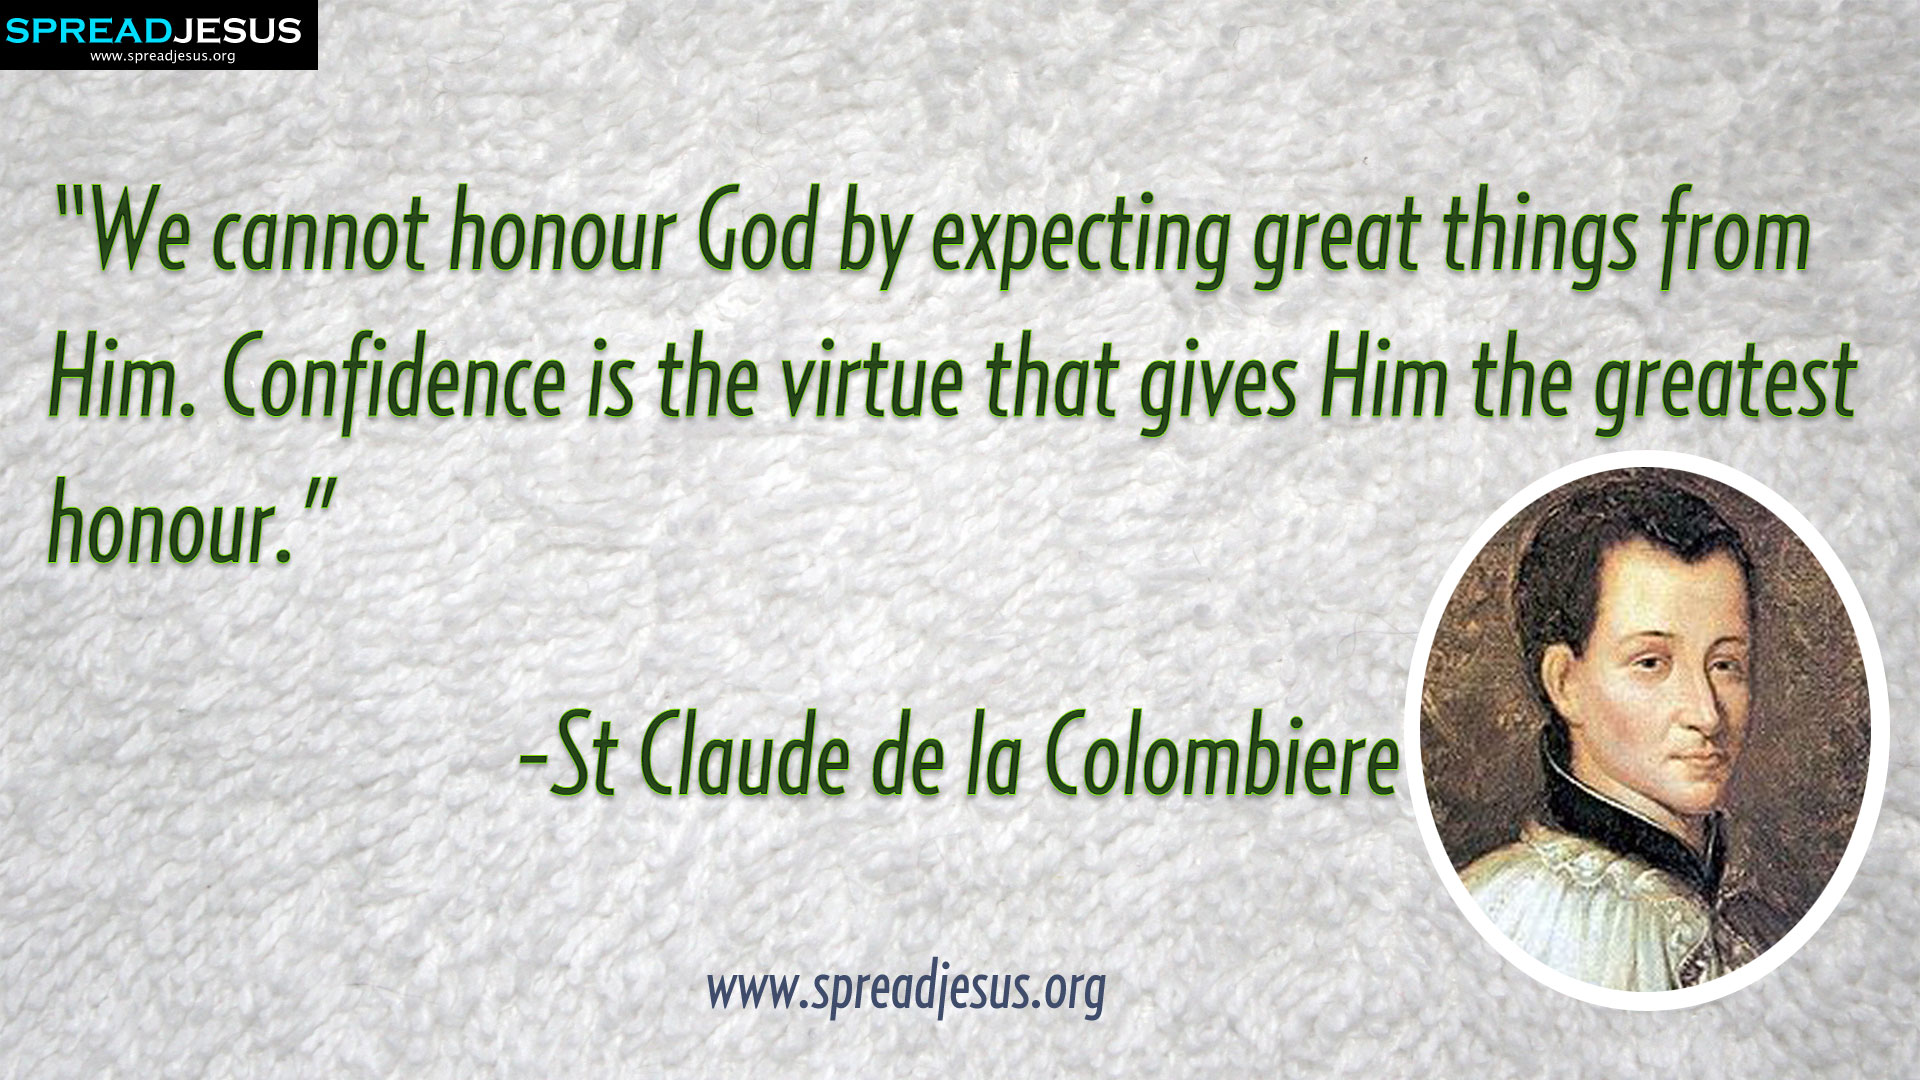 St Claude de la Colombiere Quotes